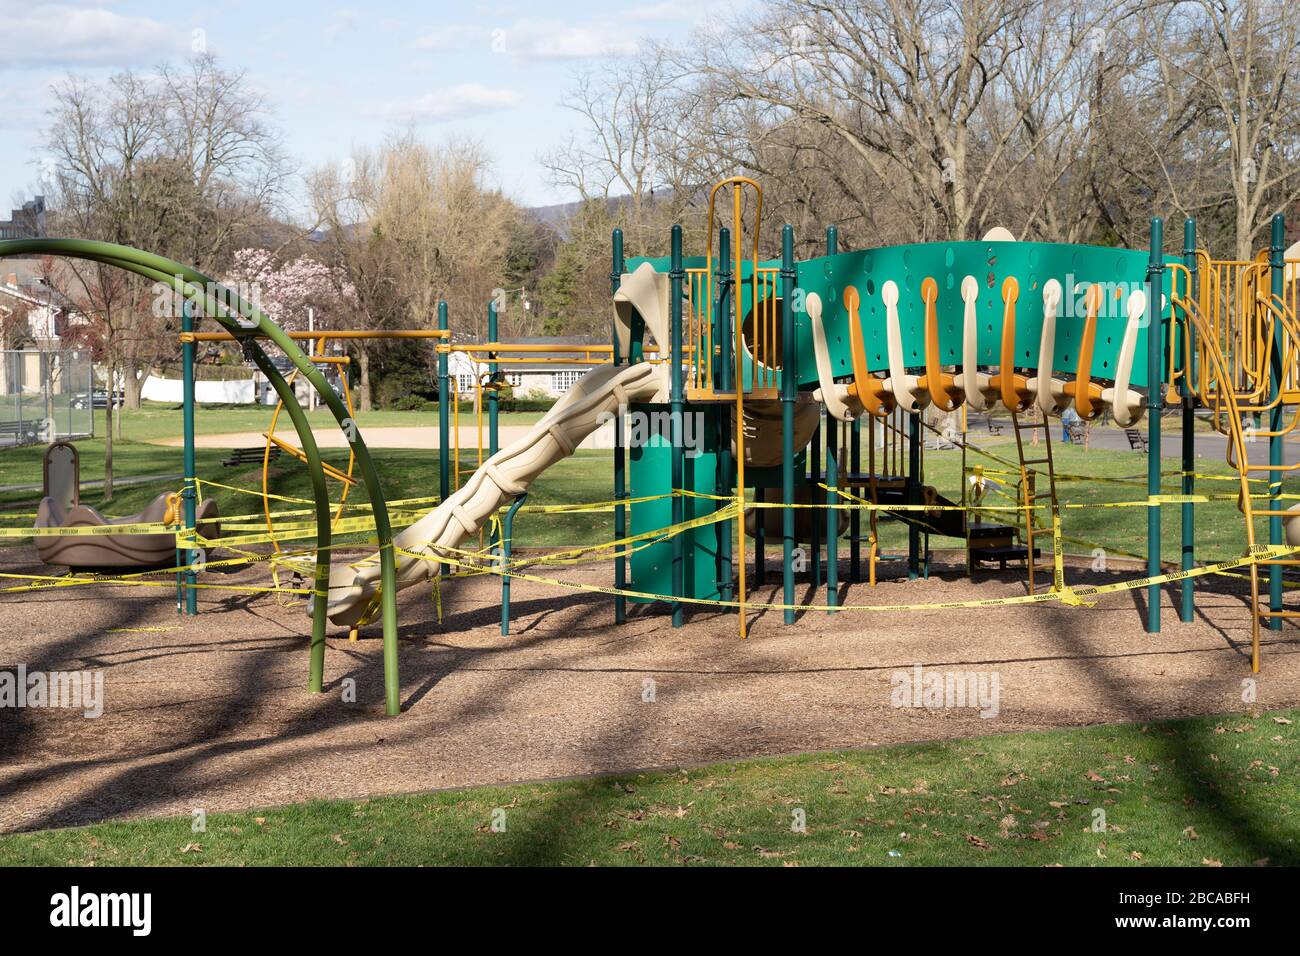 Berks County, Pennsylvania, USA-April 2, 2020: Public playground closed with caution tape so children do not play on equipment to prevent spread of co Stock Photo